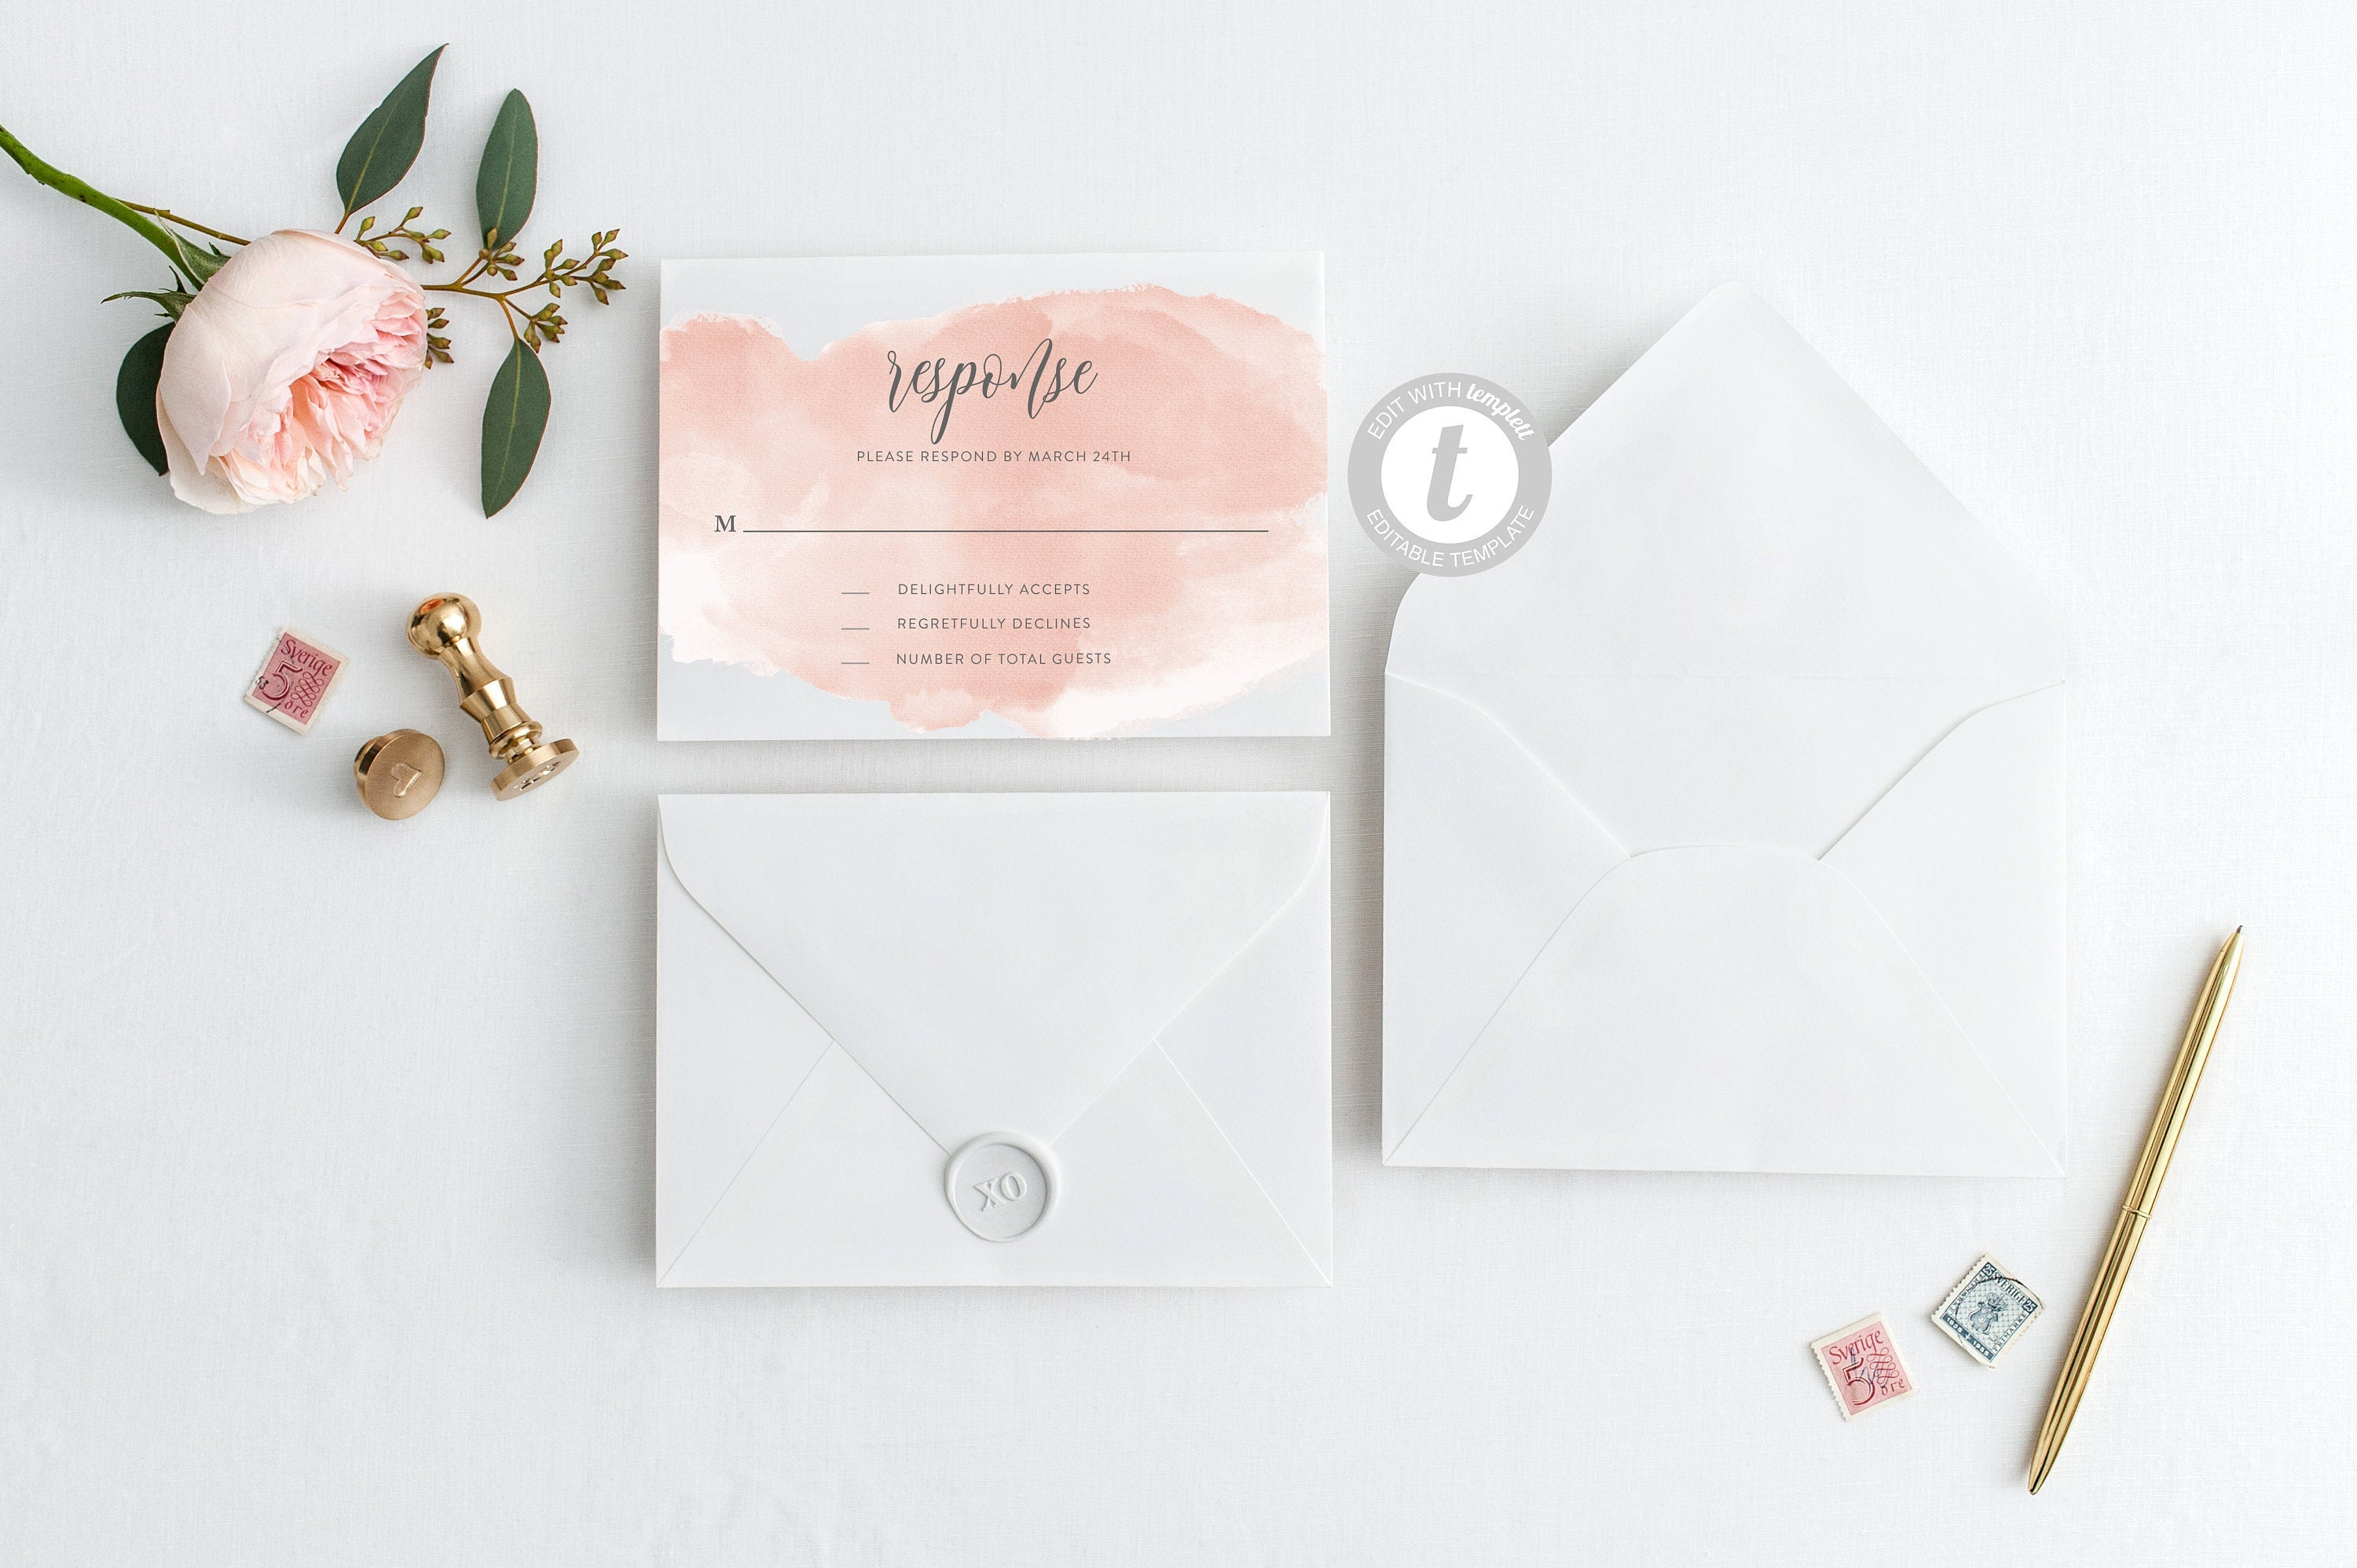 RSVP Card Template, Wedding RSVP, Response Card, RSVP cards, Watercolor Wedding, Printable rsvp, Wedding Response, Blush Pink - Bella